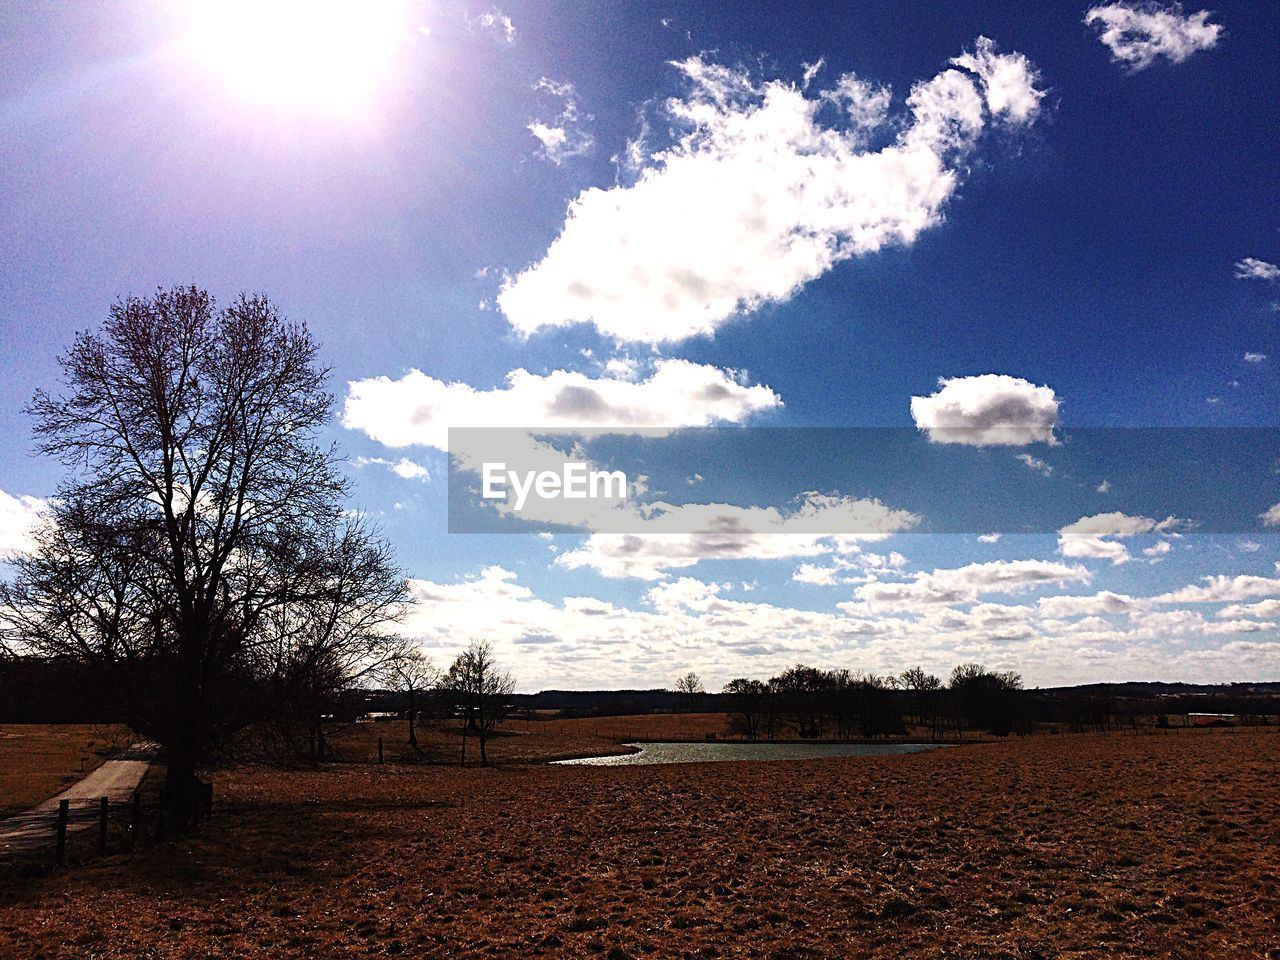 sky, tree, cloud - sky, sunlight, day, beauty in nature, no people, nature, bare tree, tranquility, landscape, outdoors, scenics